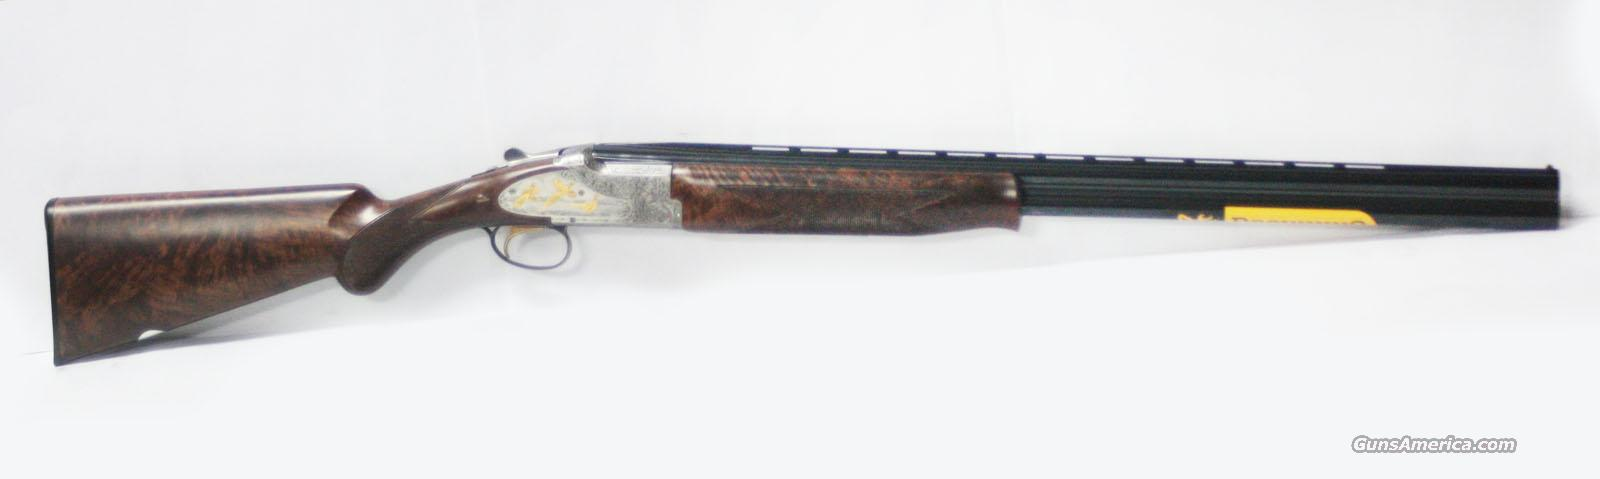 BROWNING CITORI HERITAGE 16 GAUGE NEW IN LUGGAGE CASE  Guns > Shotguns > Browning Shotguns > Over Unders > Citori > Hunting